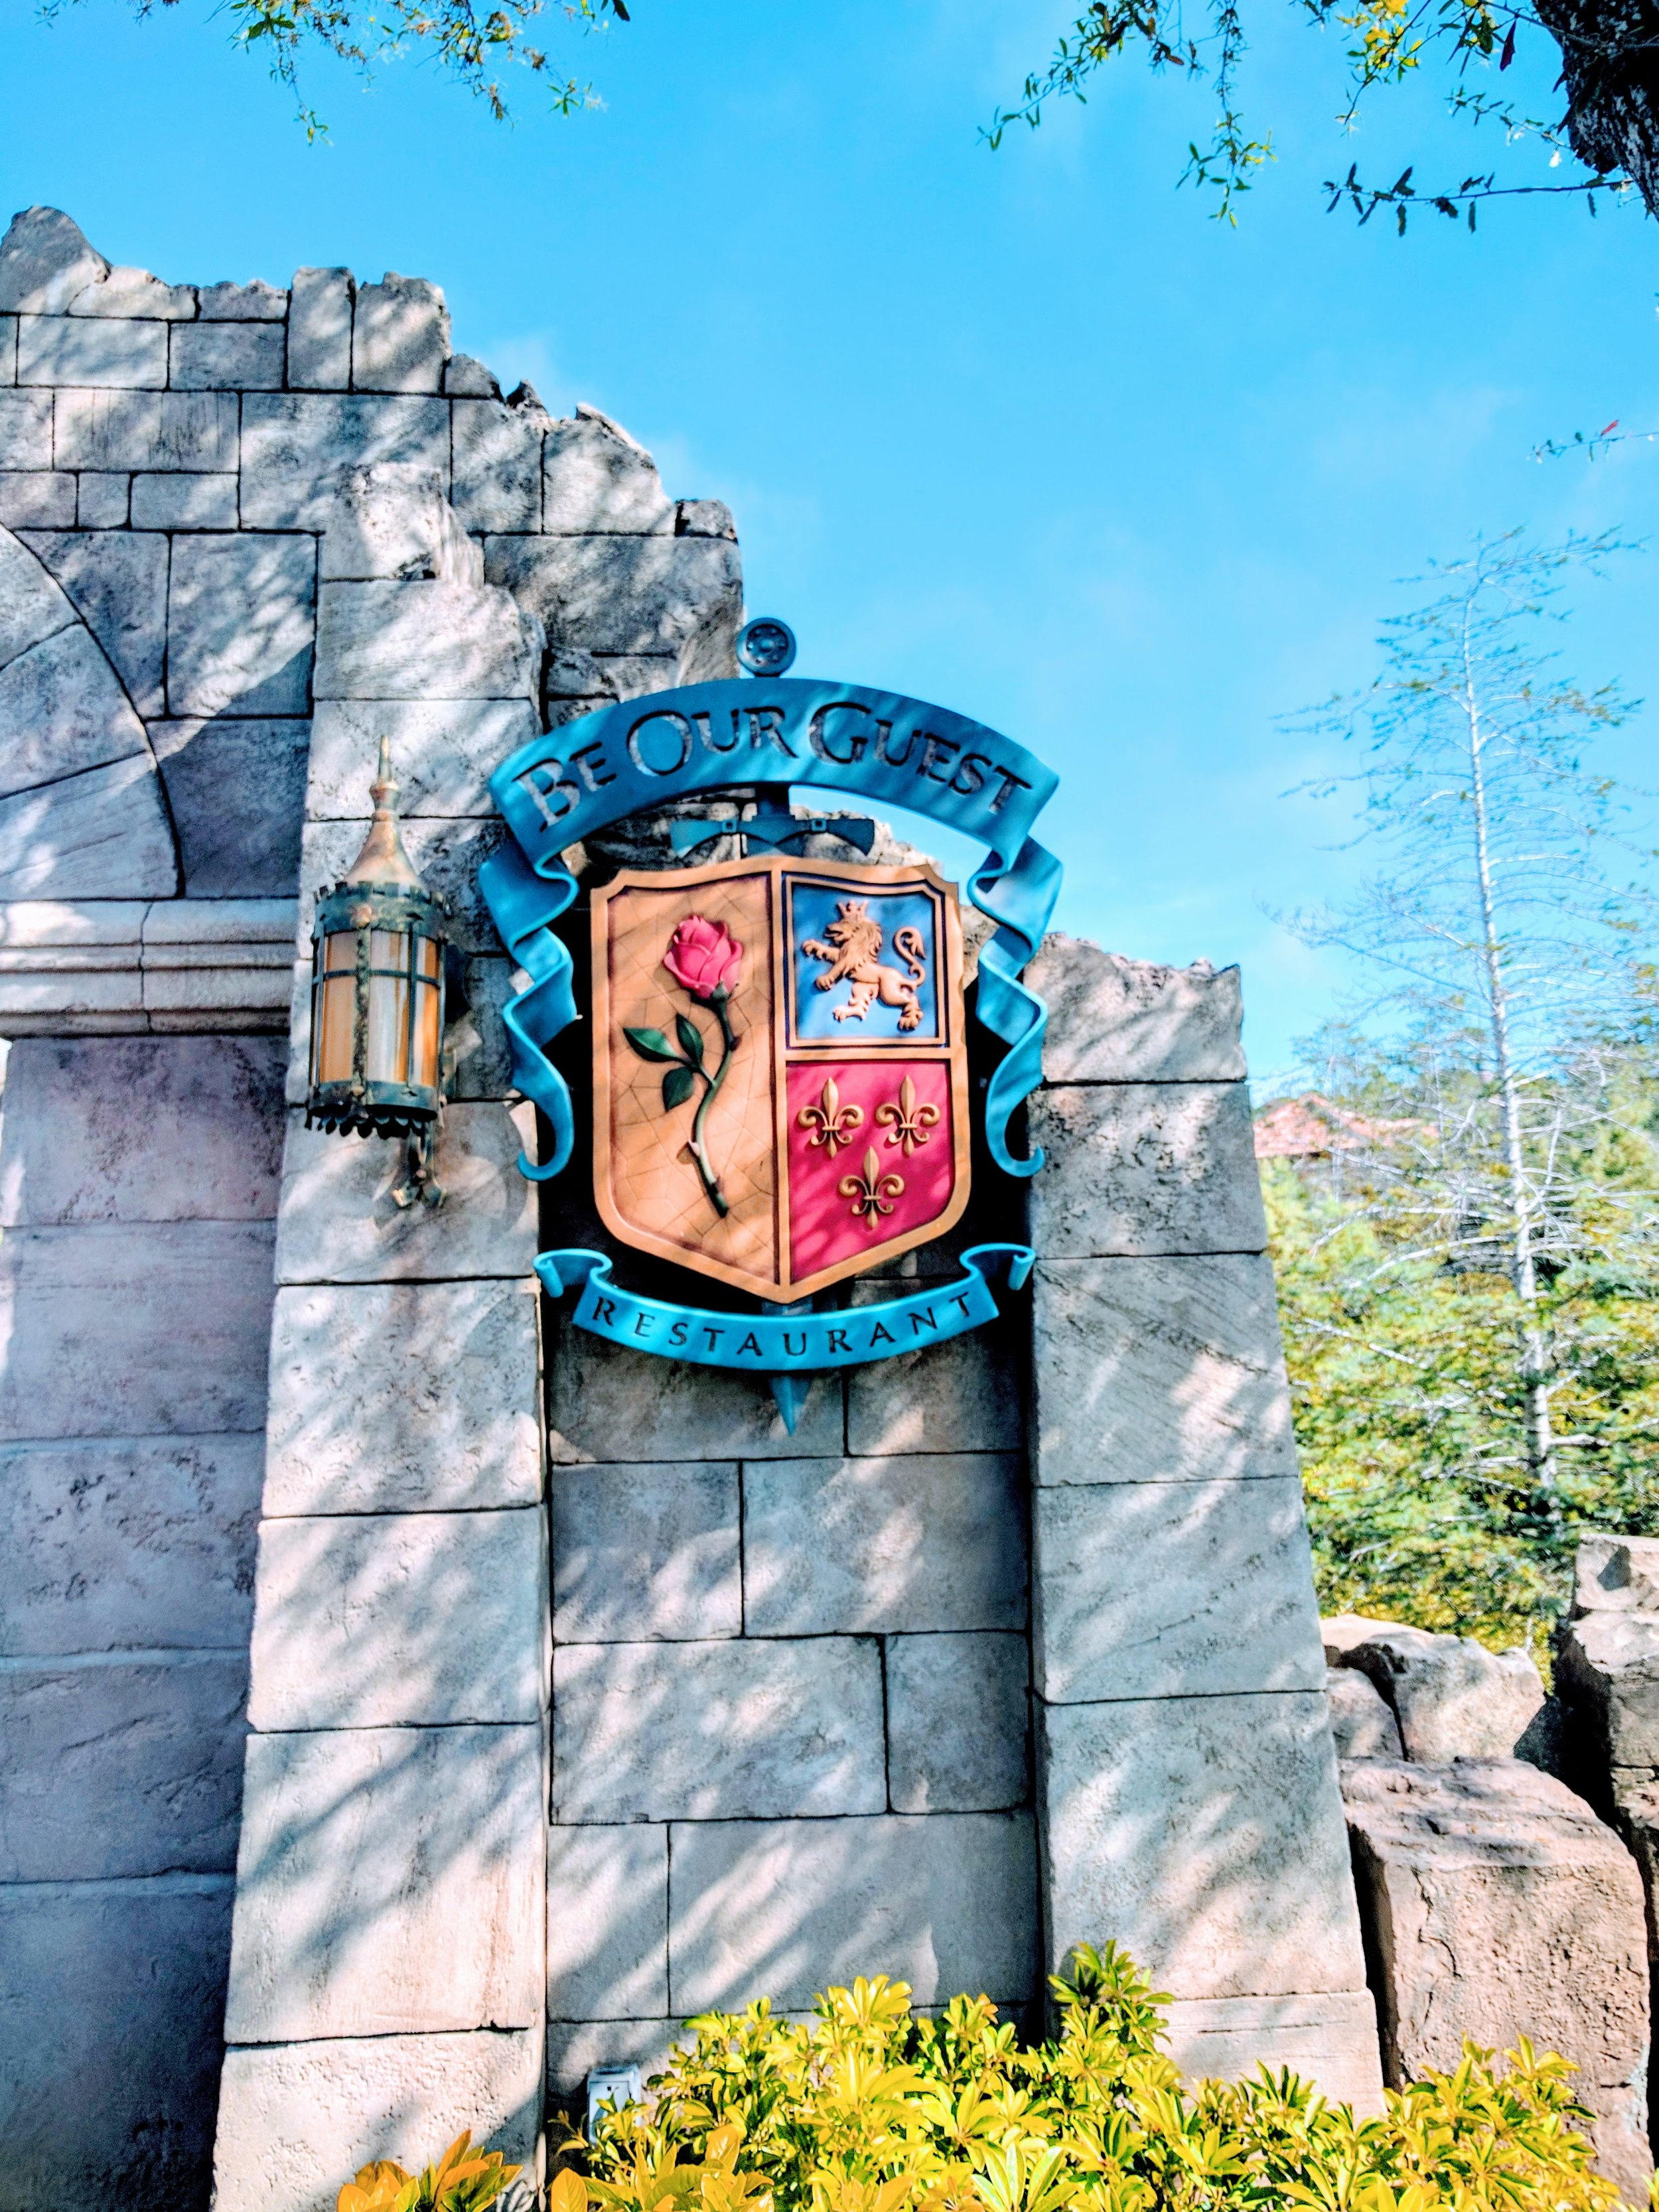 Located in New Fantasy Land behind the Seven Dwarves Mine Train, Be Our Guest is hard to miss with it's large bridge over the moat leading to Beast's Castle.